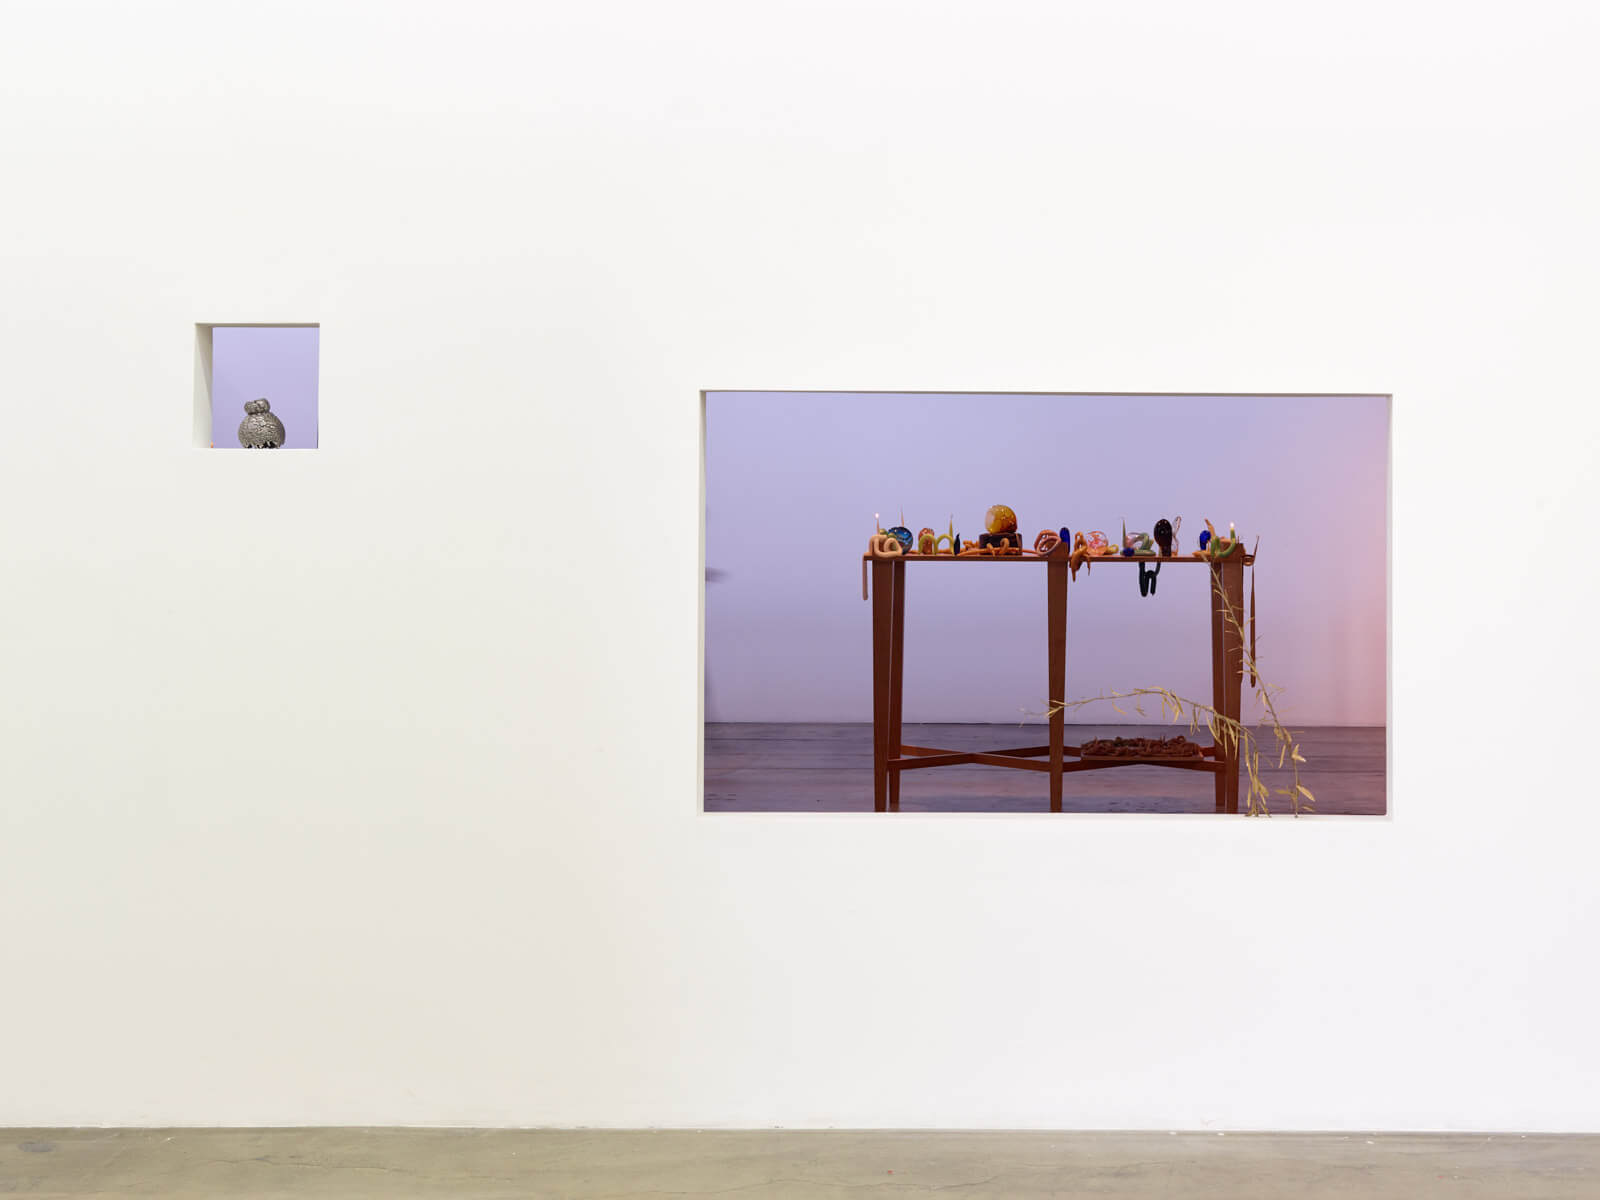 8_kelly-akashi-being-as-a-thing-installation-view